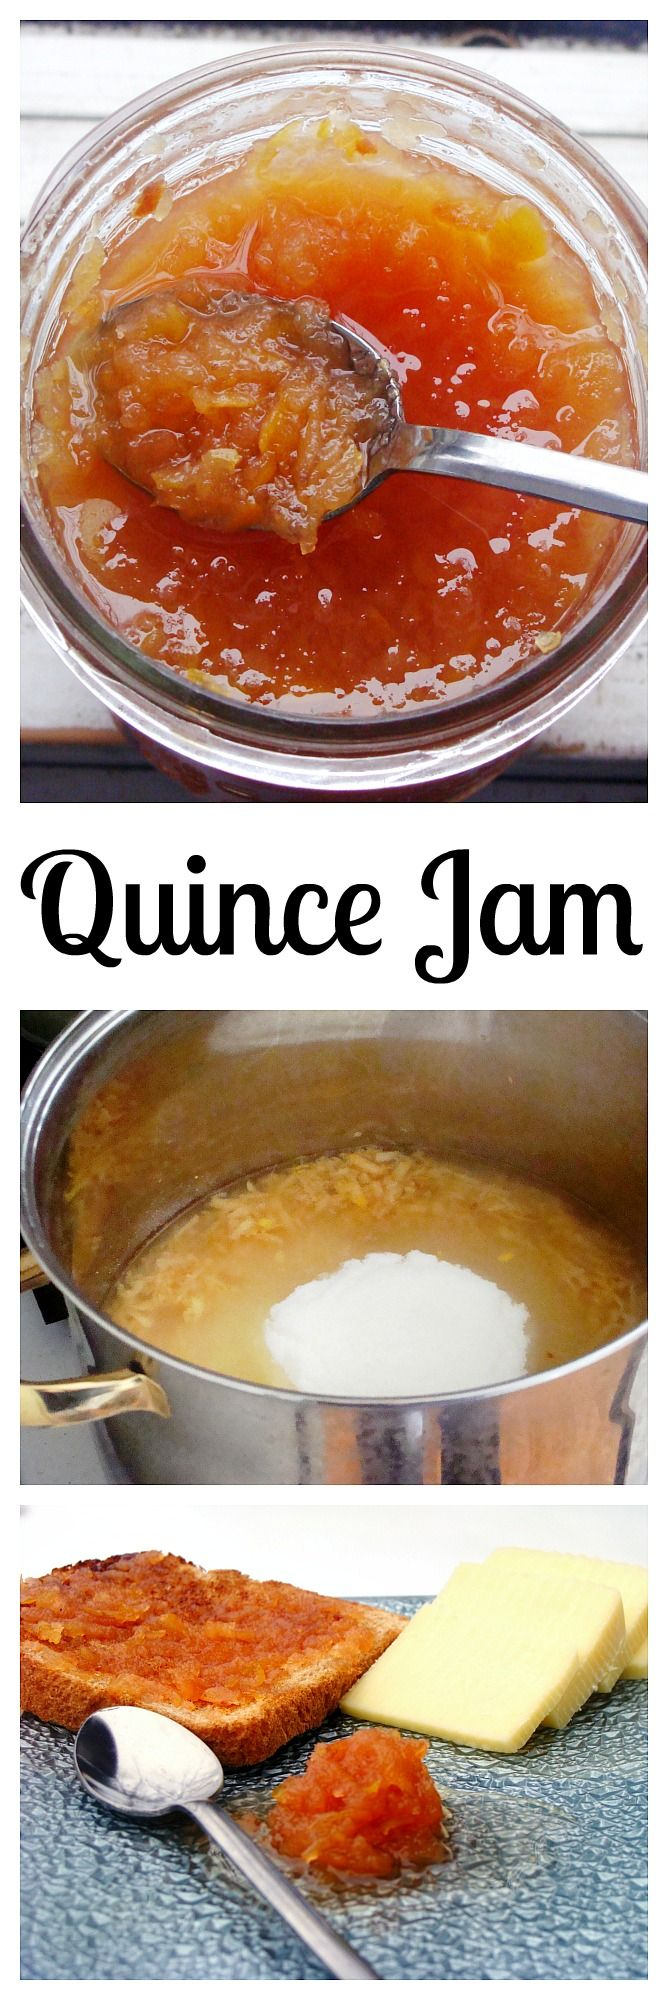 Quince Jam -  With quince, sugar, and a little lemon juice, this jam is SO delicious and it's very easy to make!